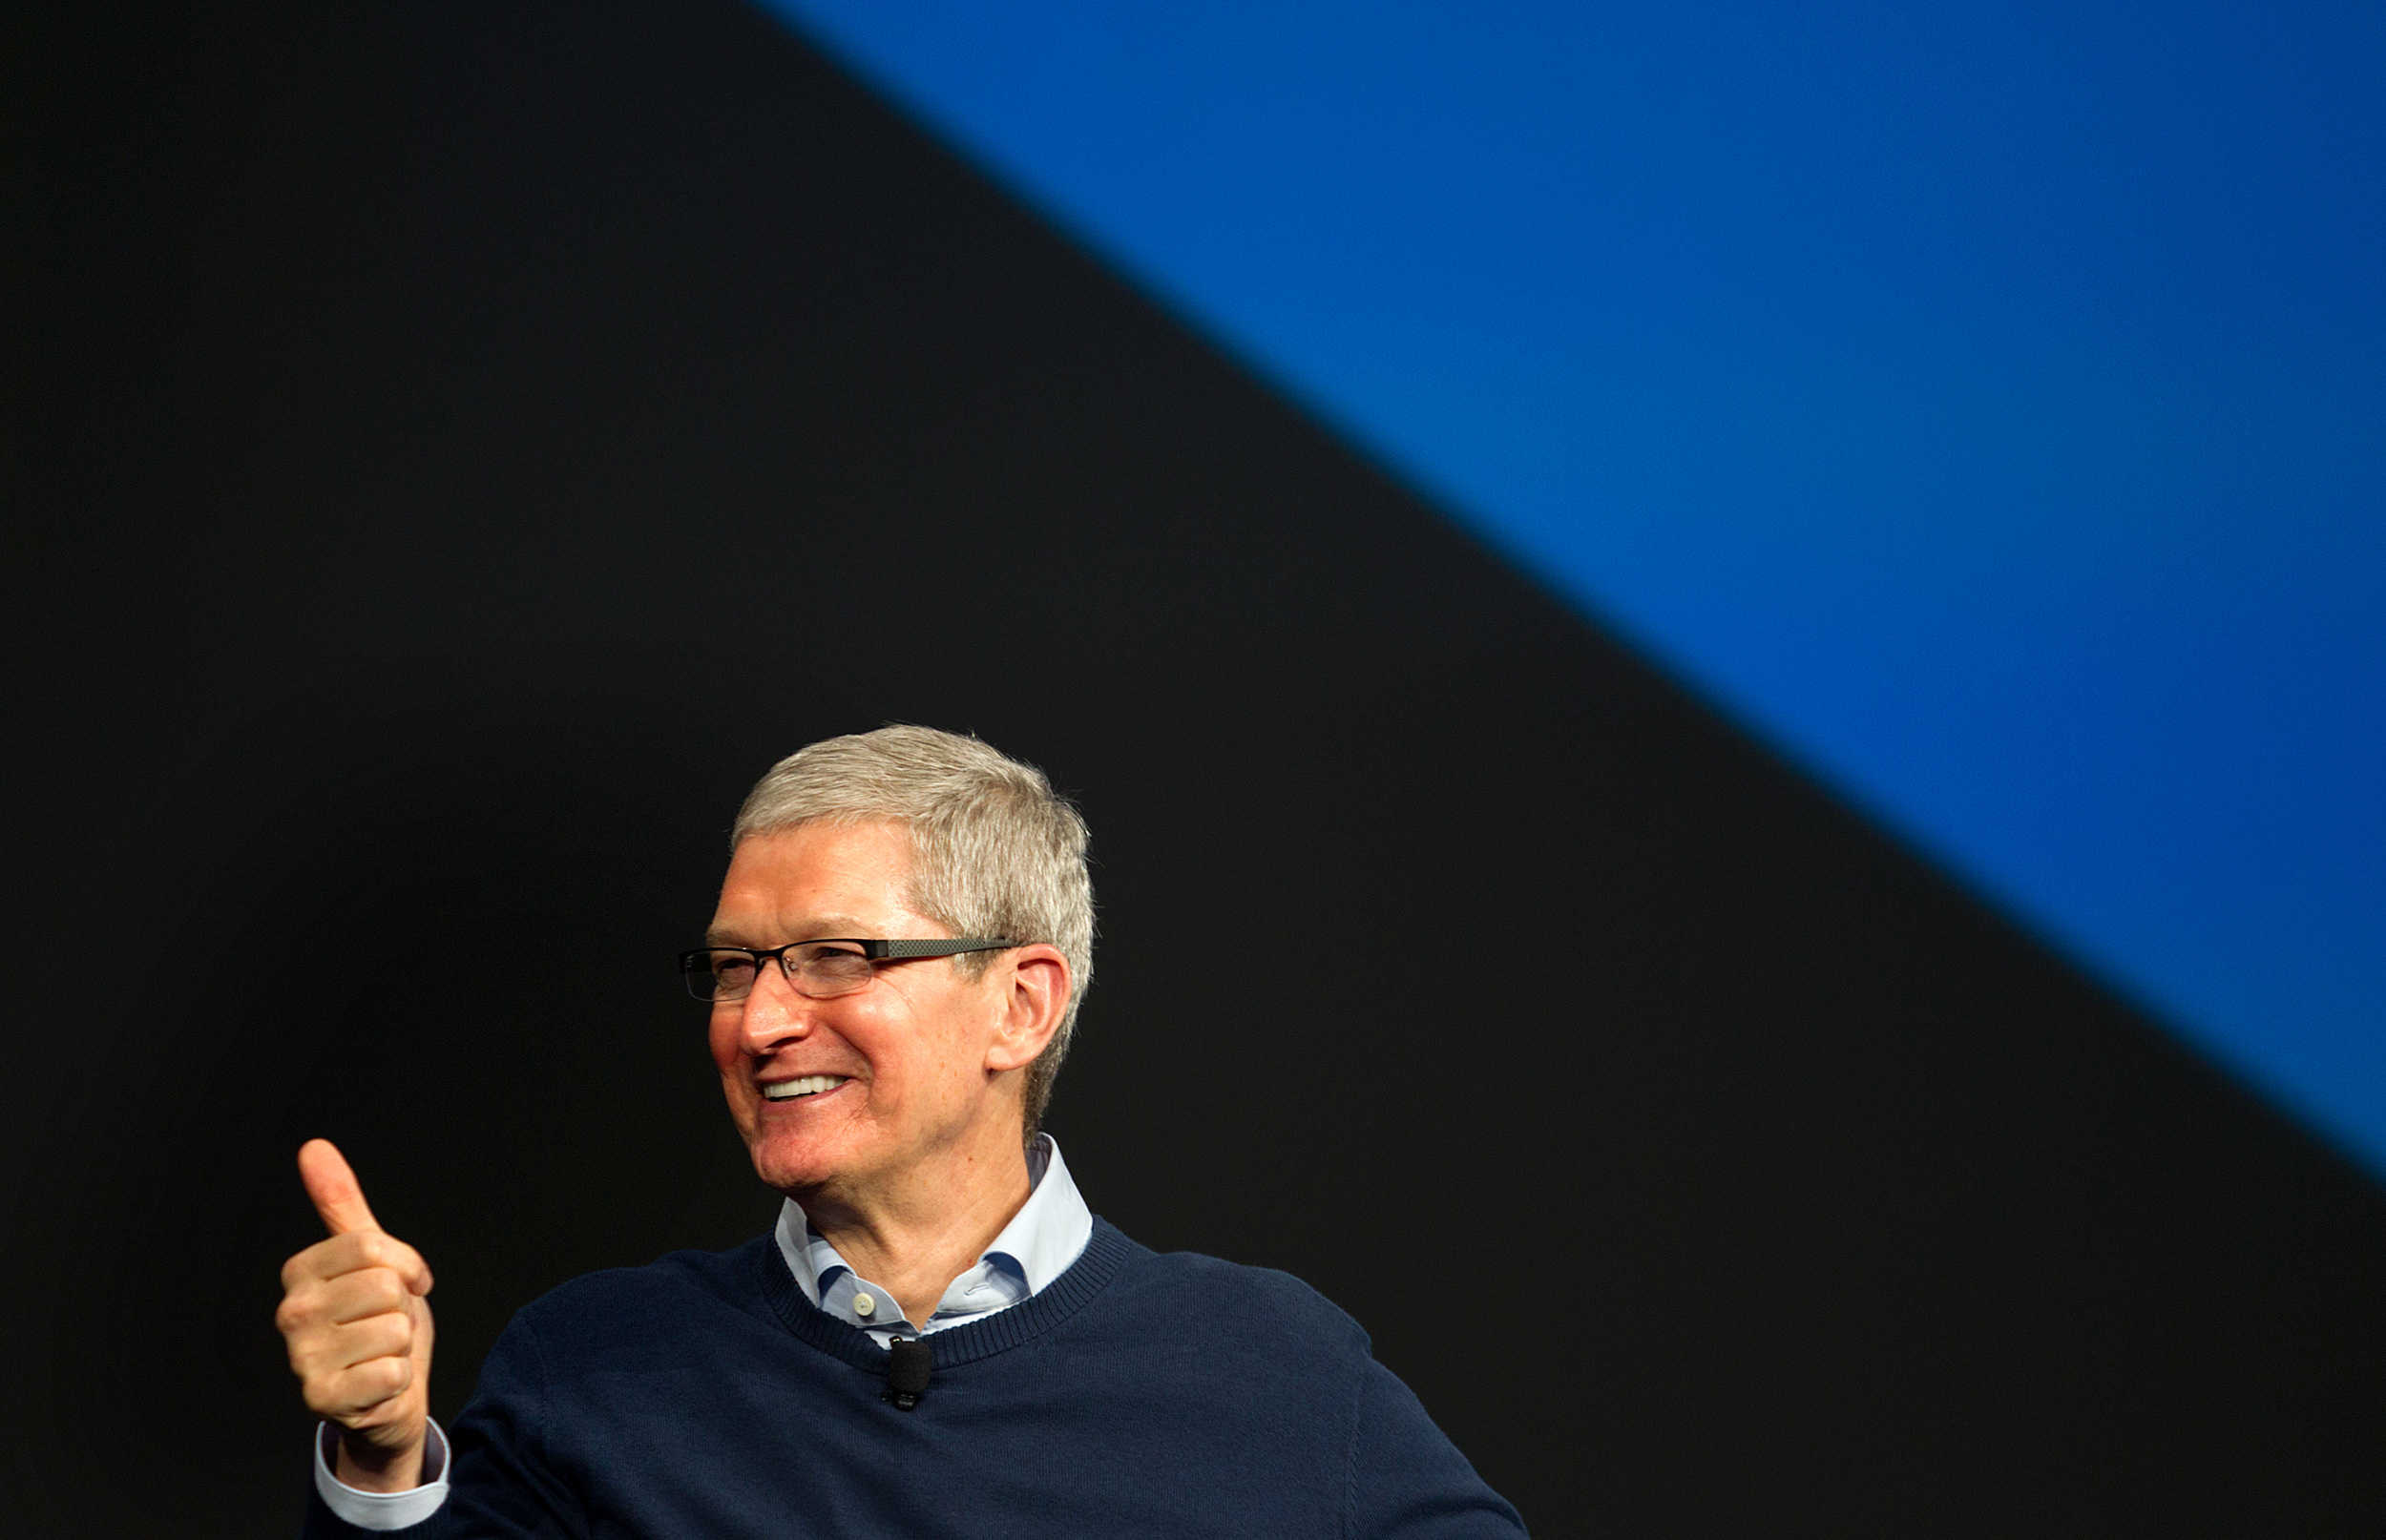 Tim Cook gets as many votes as Jindal in presidential primary